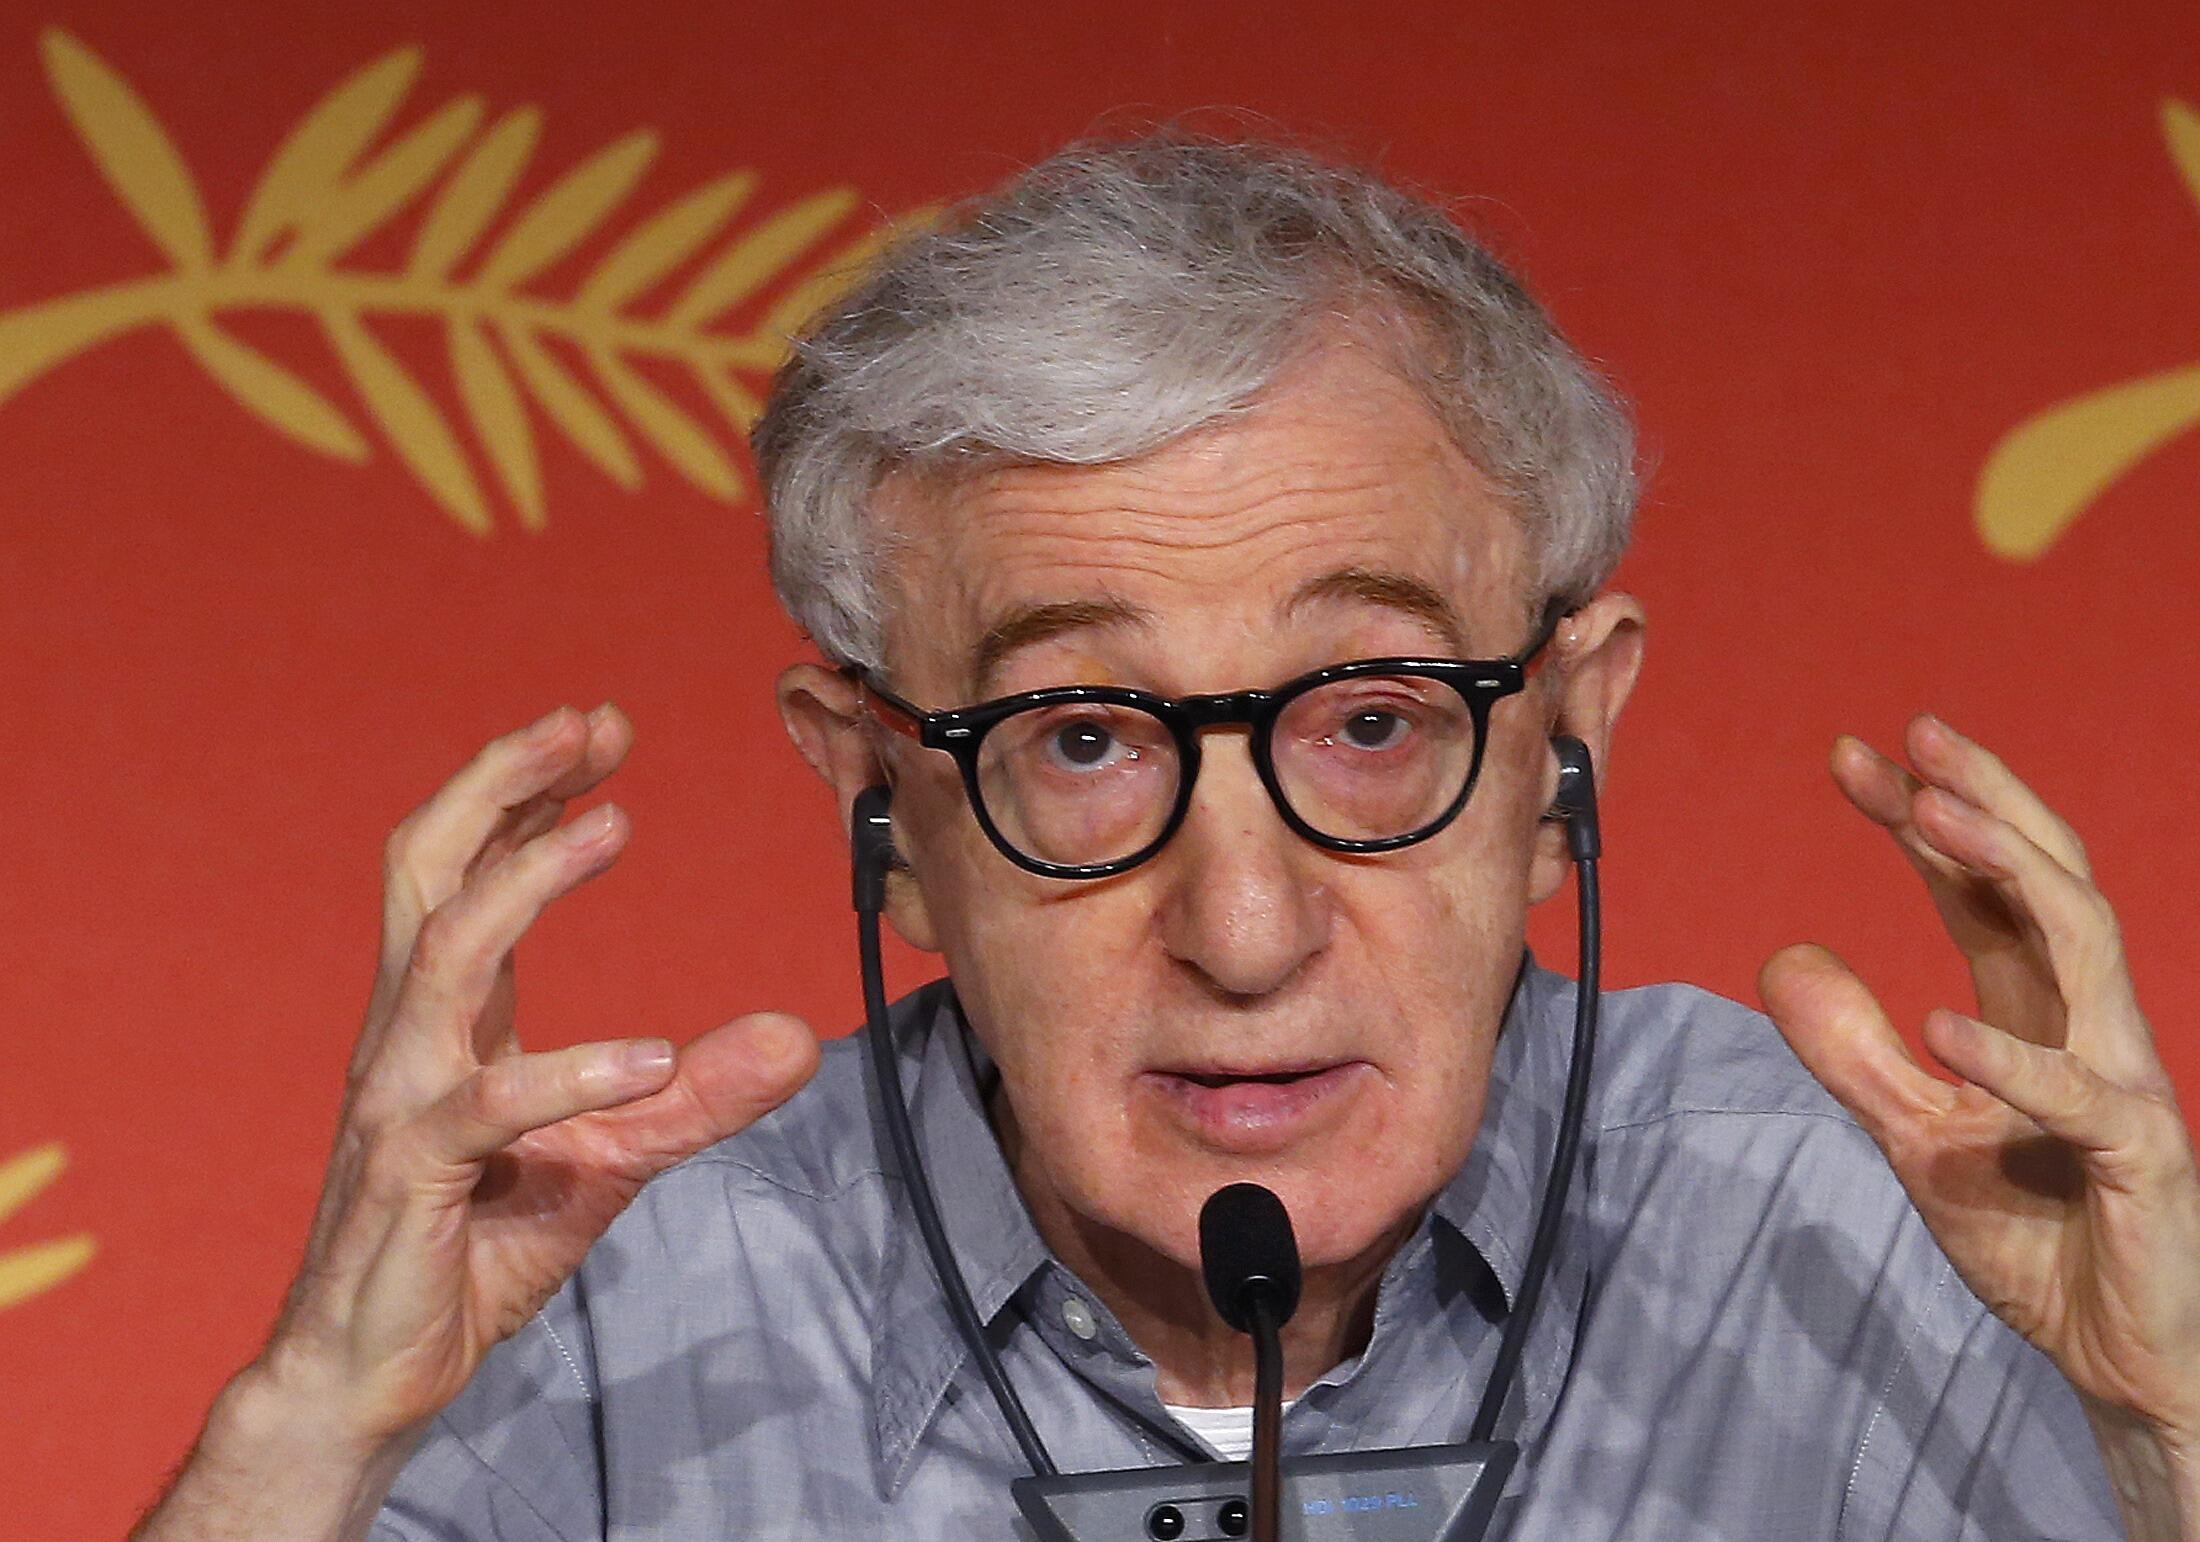 """Director Woody Allen gestures as he attends a news conference for the film """"Cafe Society"""" out of competition, before the opening of the 69th Cannes Film Festival in Cannes, France, May 11, 2016."""